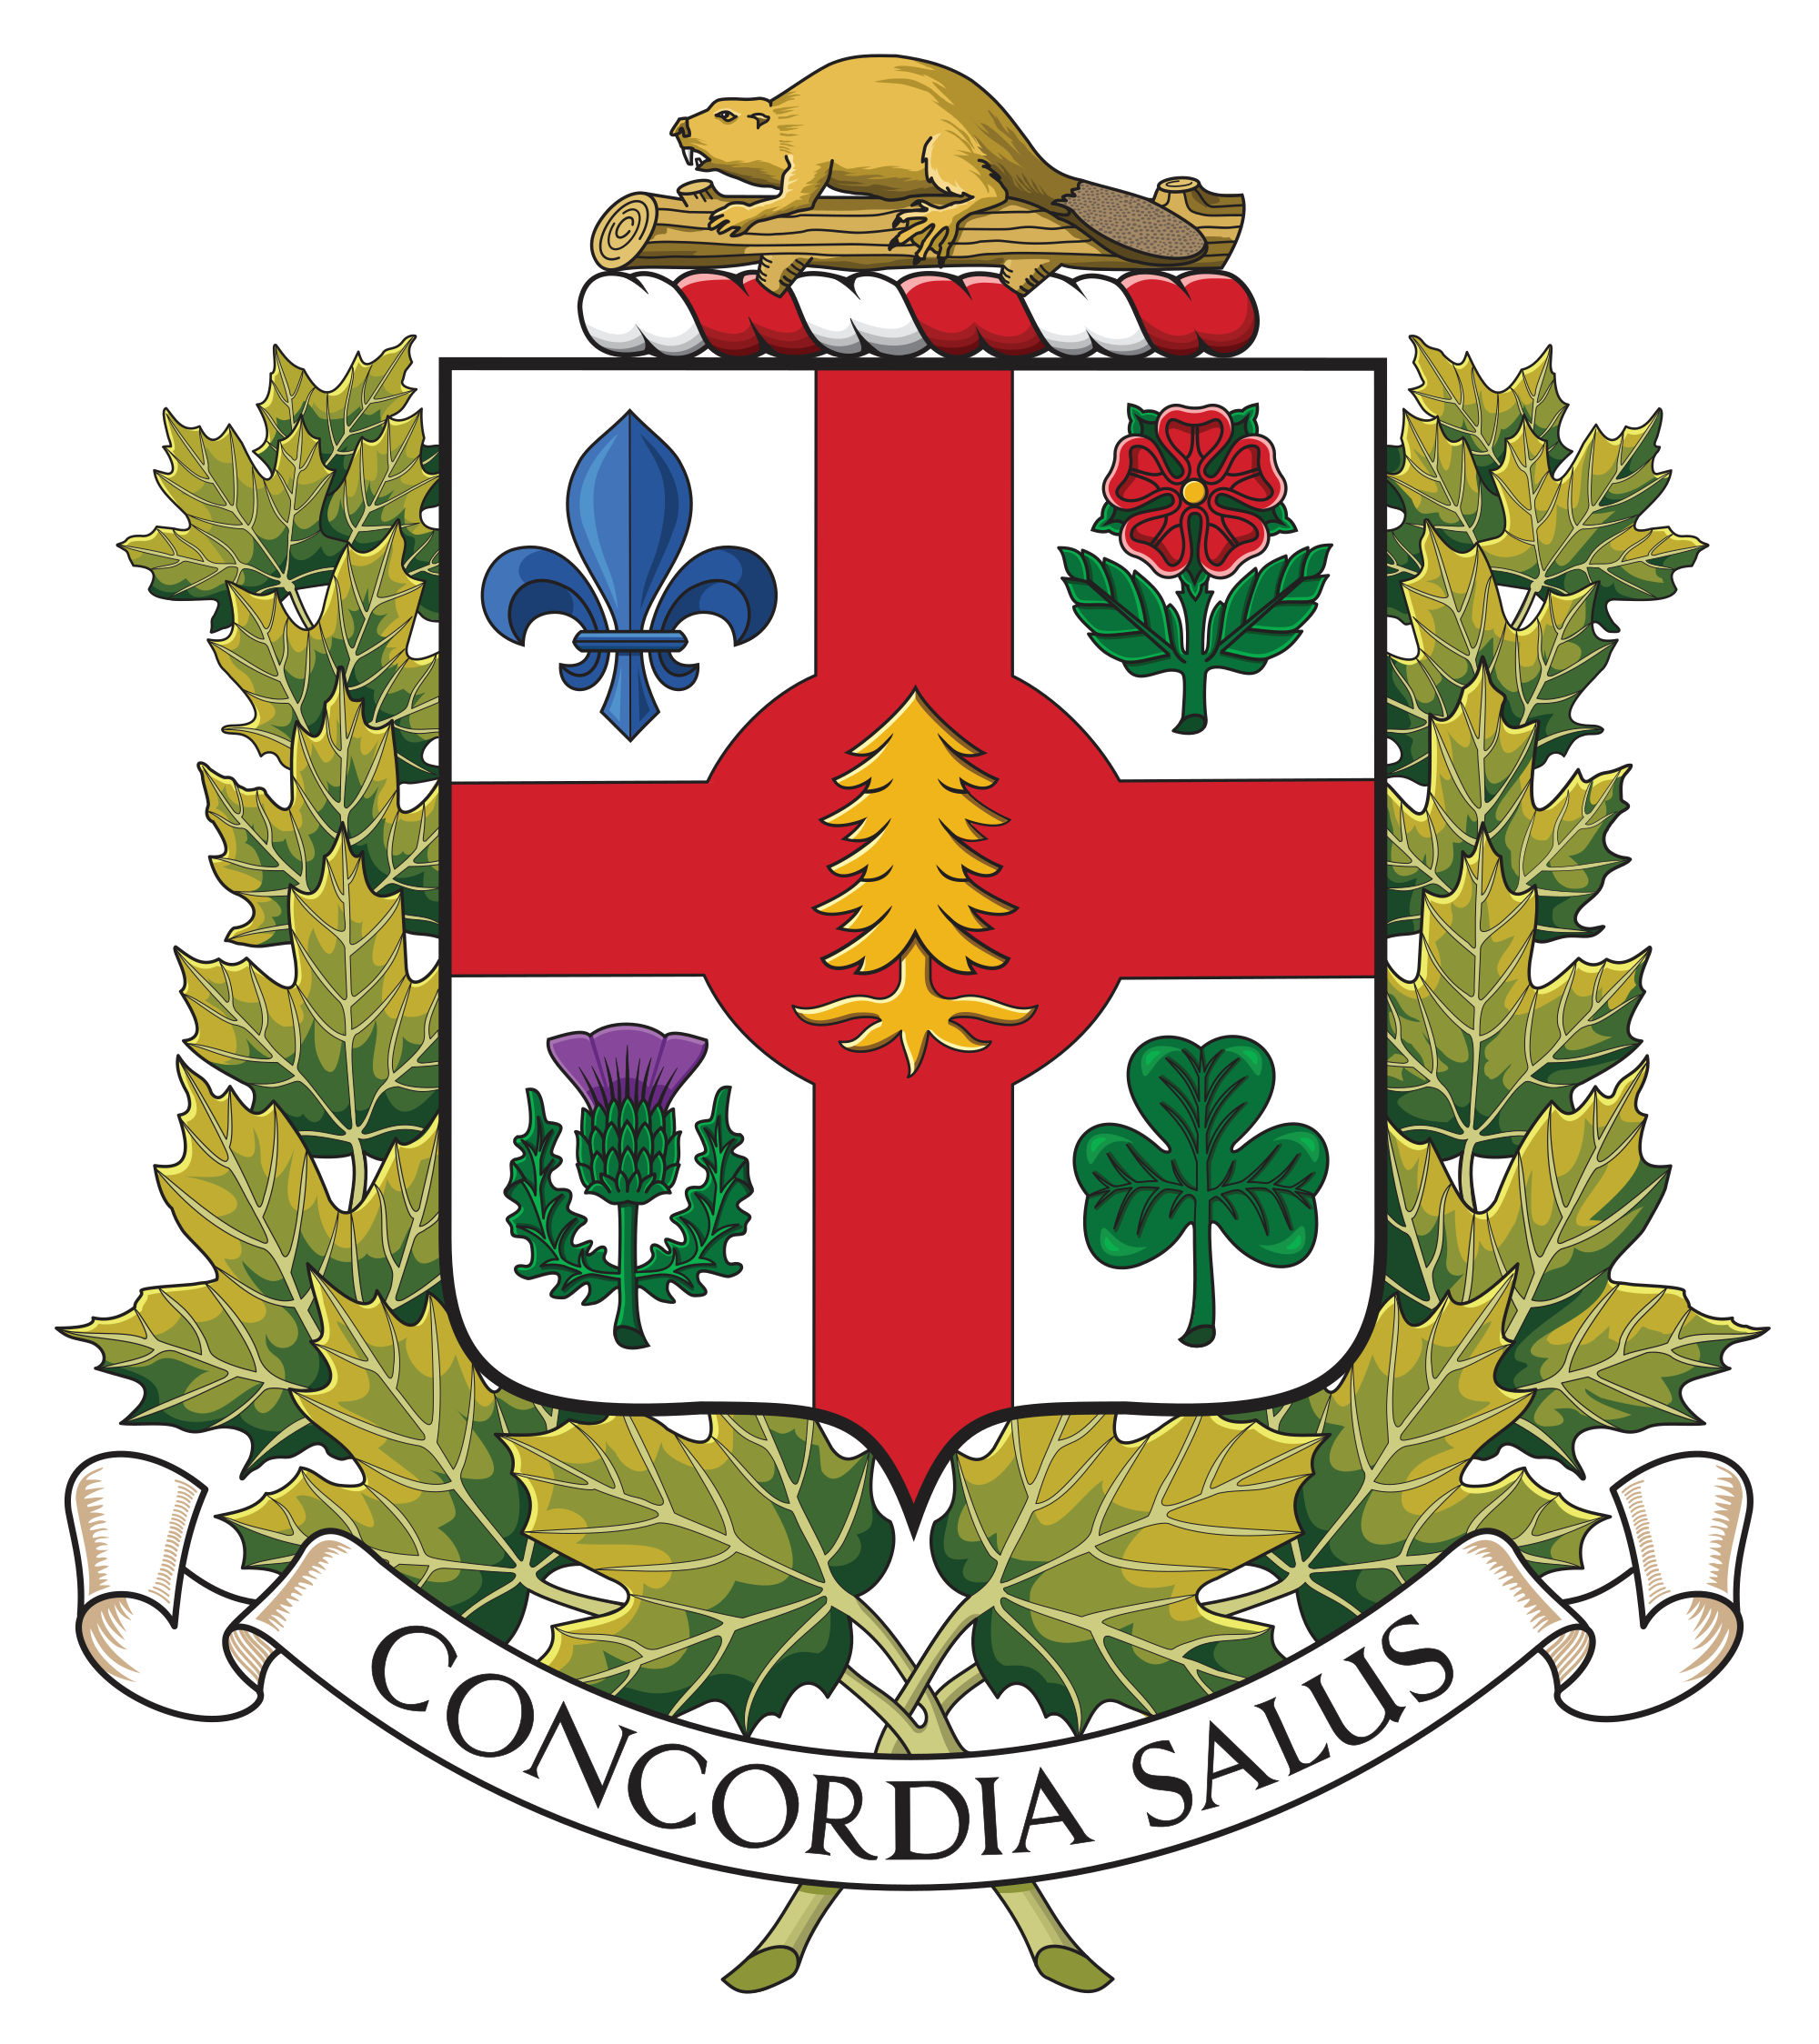 Courthouse clipart municipality. Coat of arms montreal